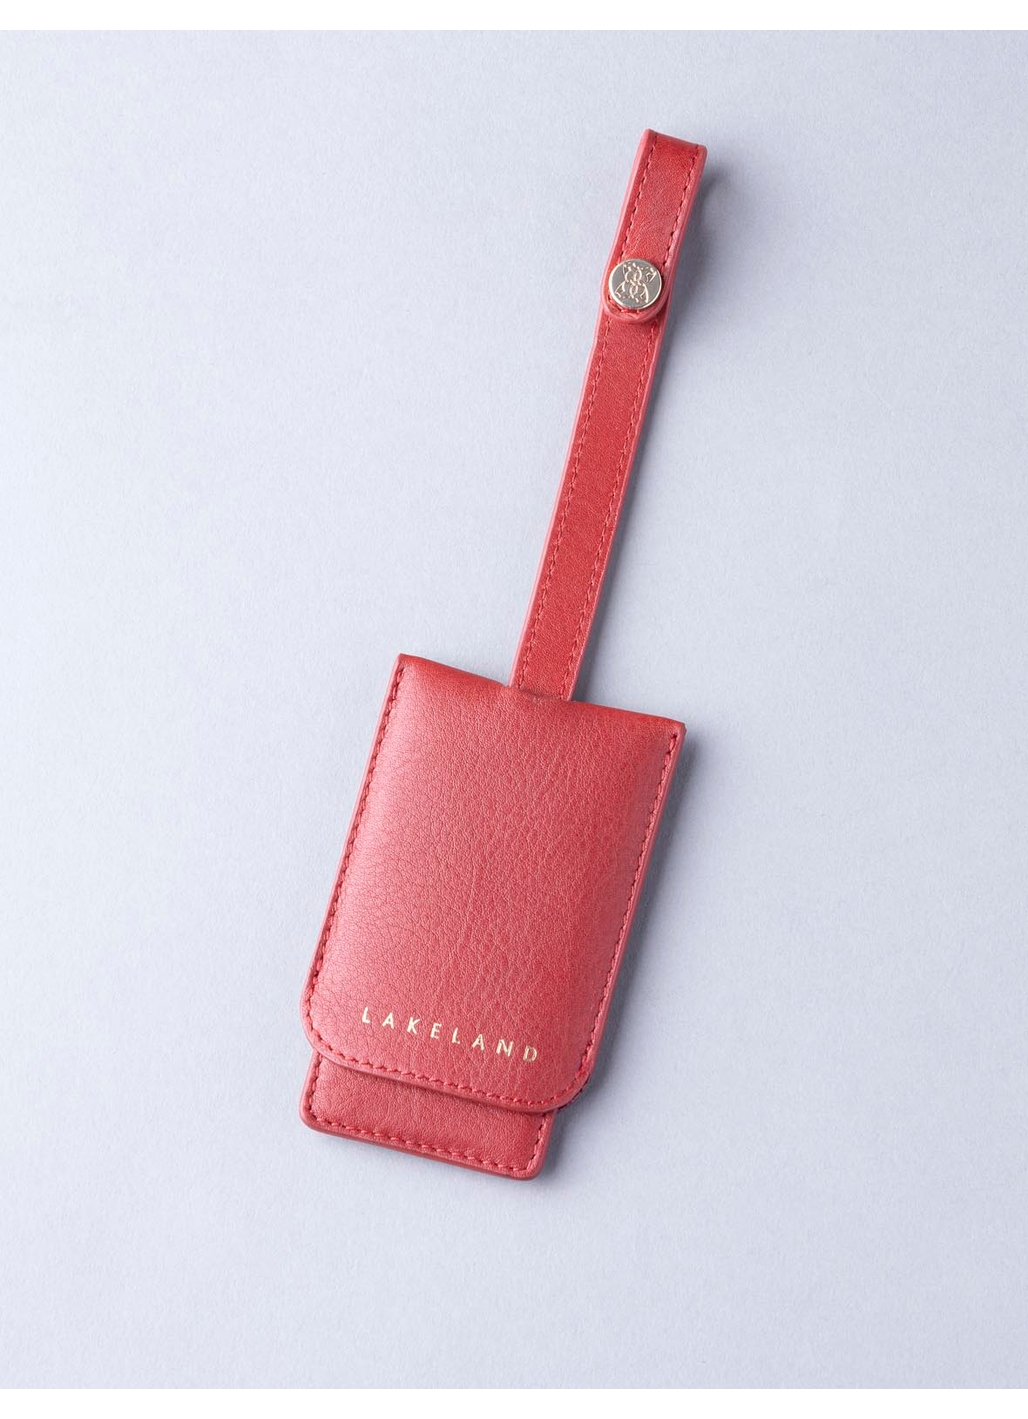 Wray Leather Mirror Key Ring In Red